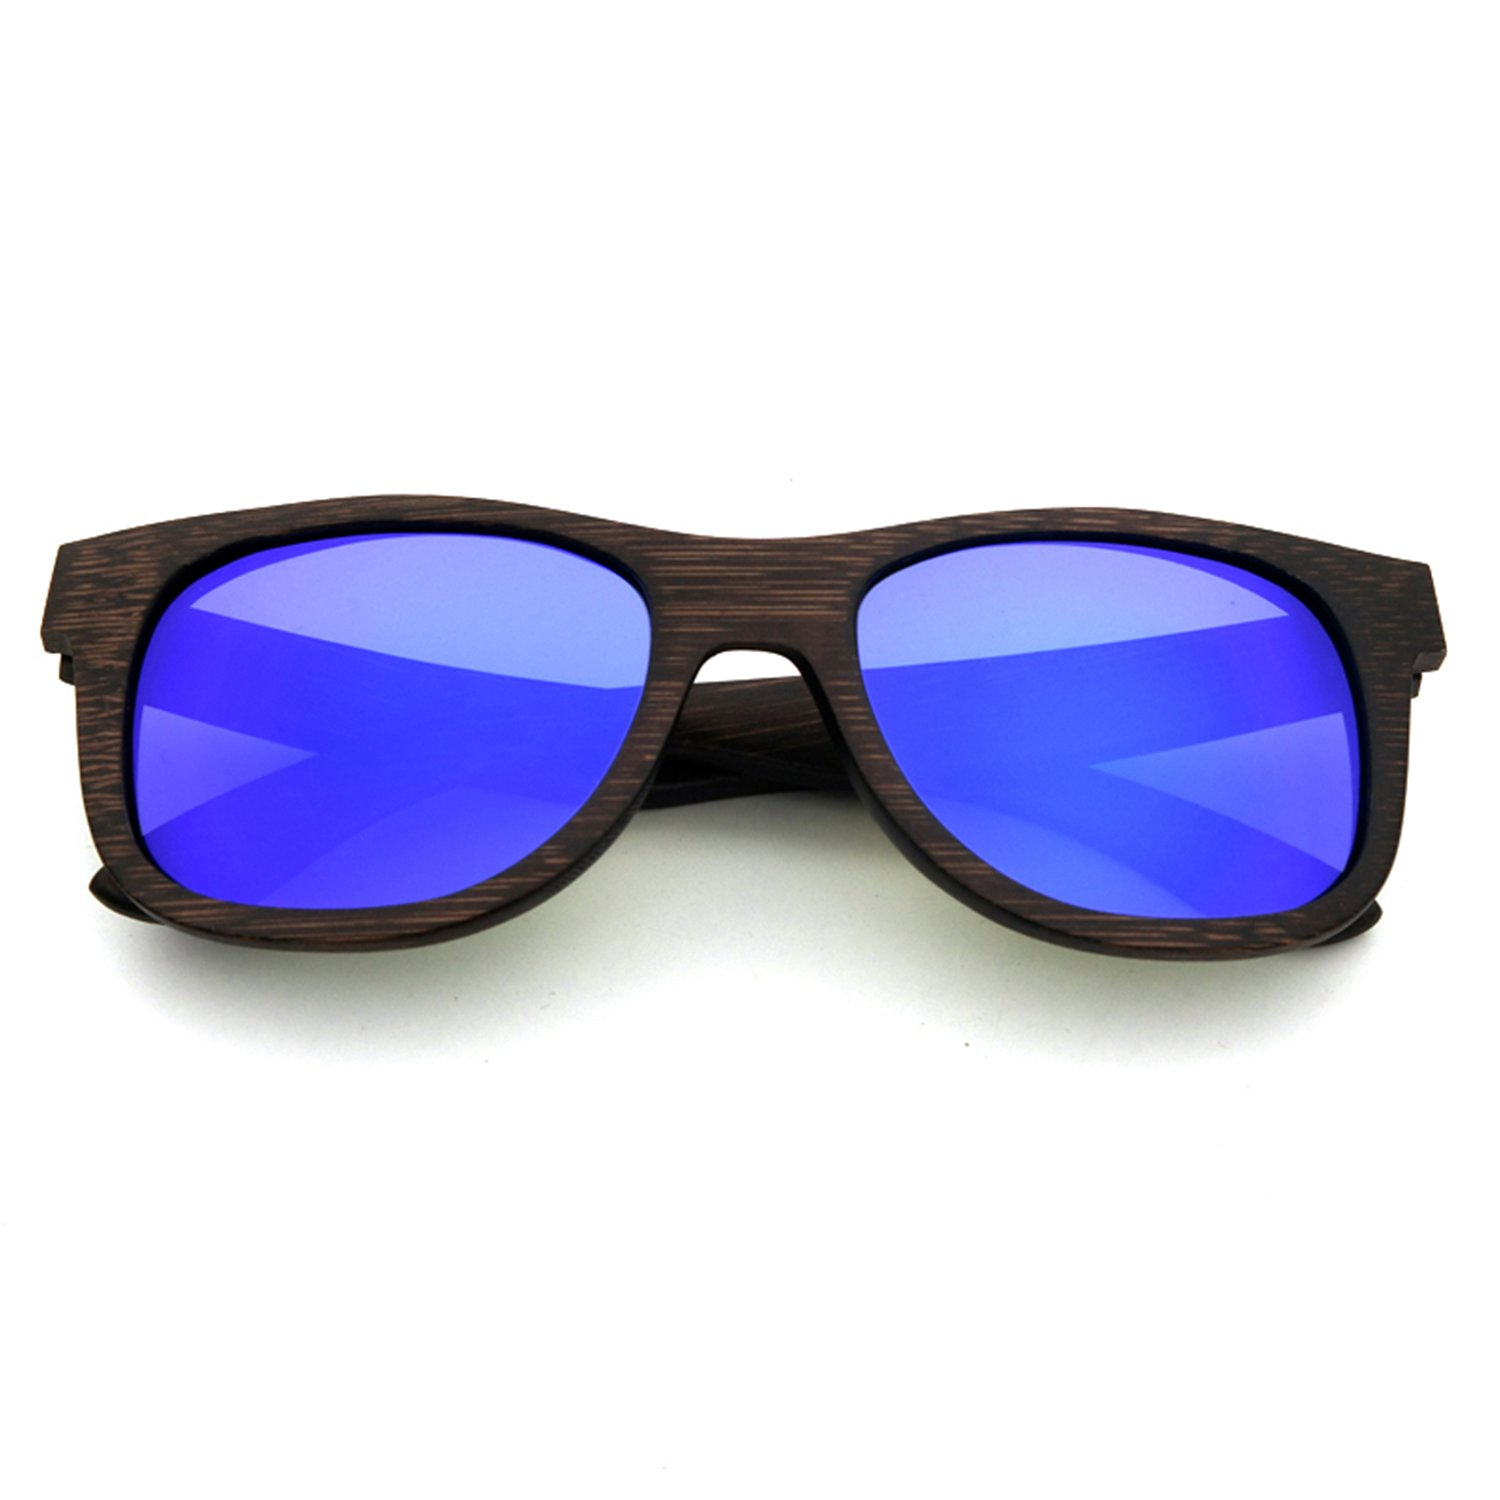 LUI SUI Men Women Retro Wood Polarised Lens Sunglasses UV Protection Eyewear Lightweight Wooden Frame Float Style Glasses for Traveling Cycling Fishing